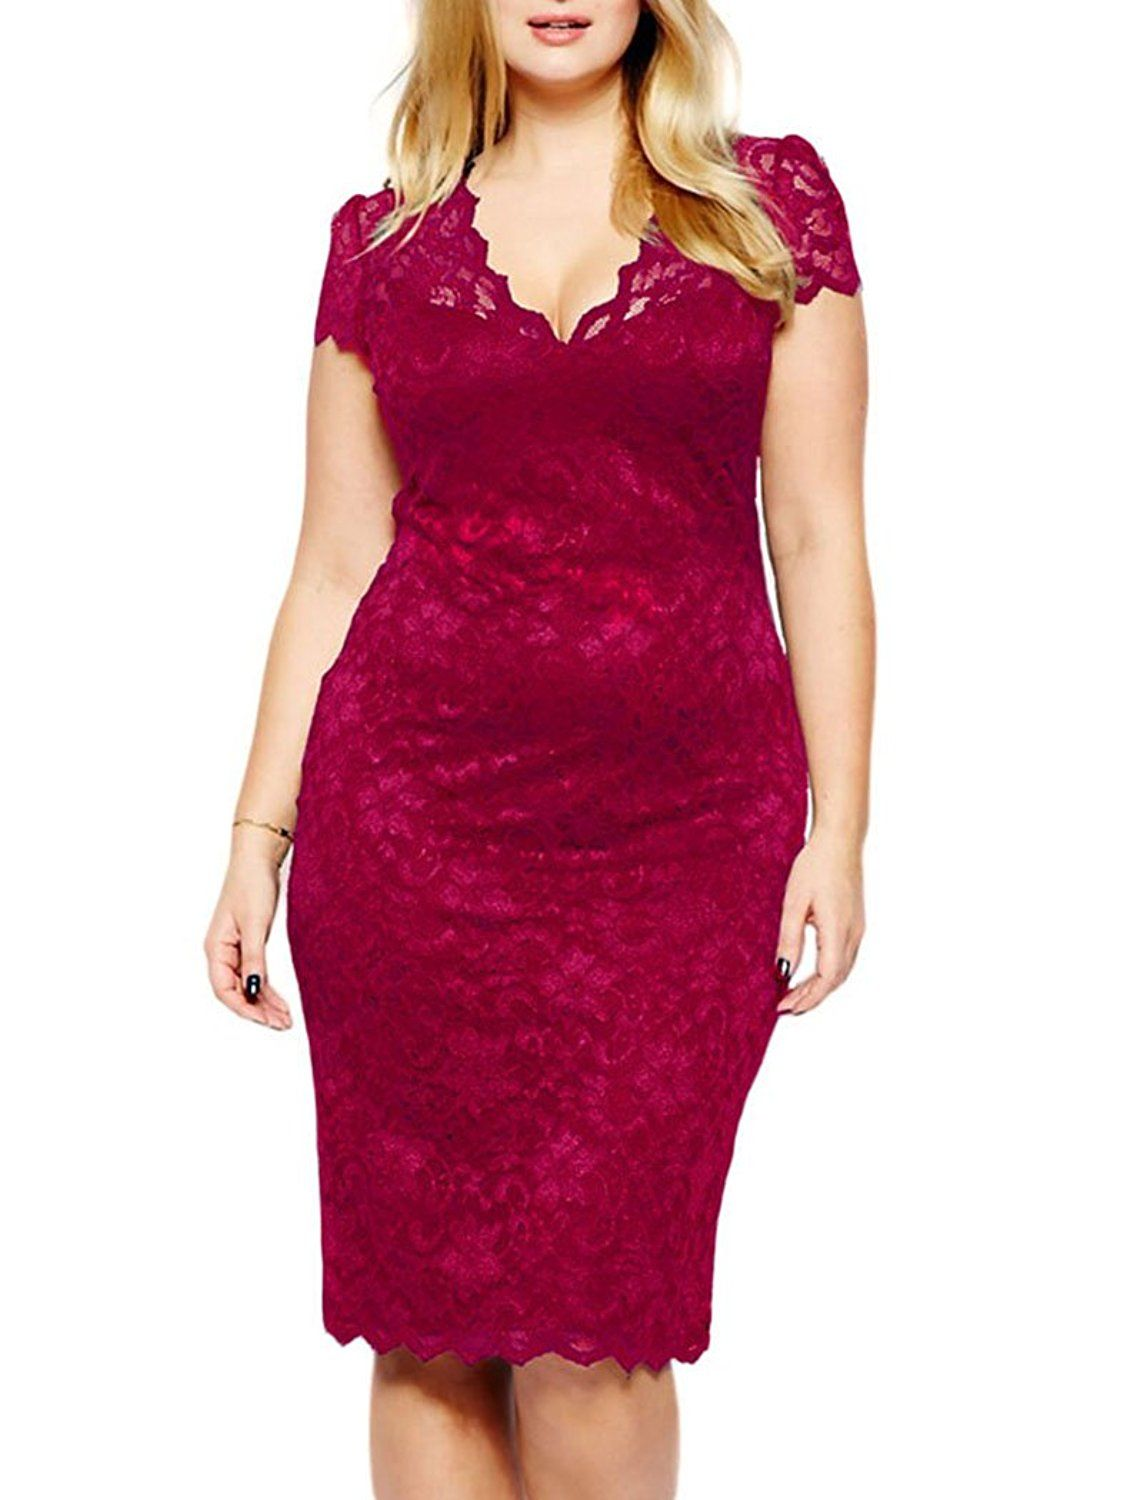 Red lace dress plus size  JandDesign Women VNeck Short Sleeve Party Club Bodycon Dress Plus